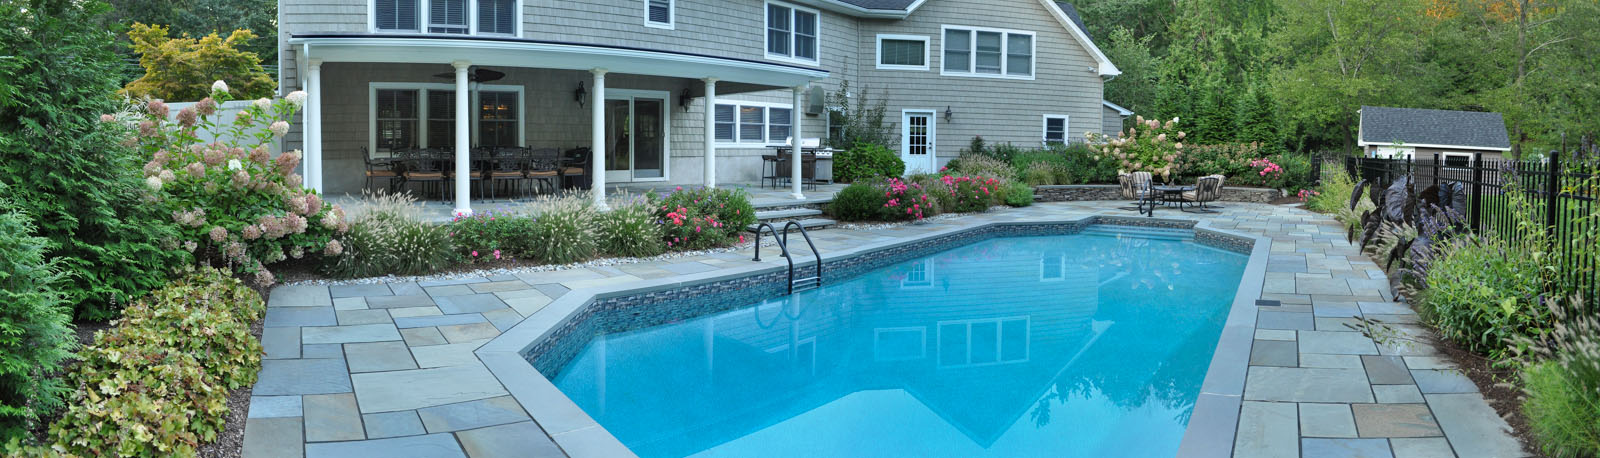 before and after landscape pictures, nj swimming pool design